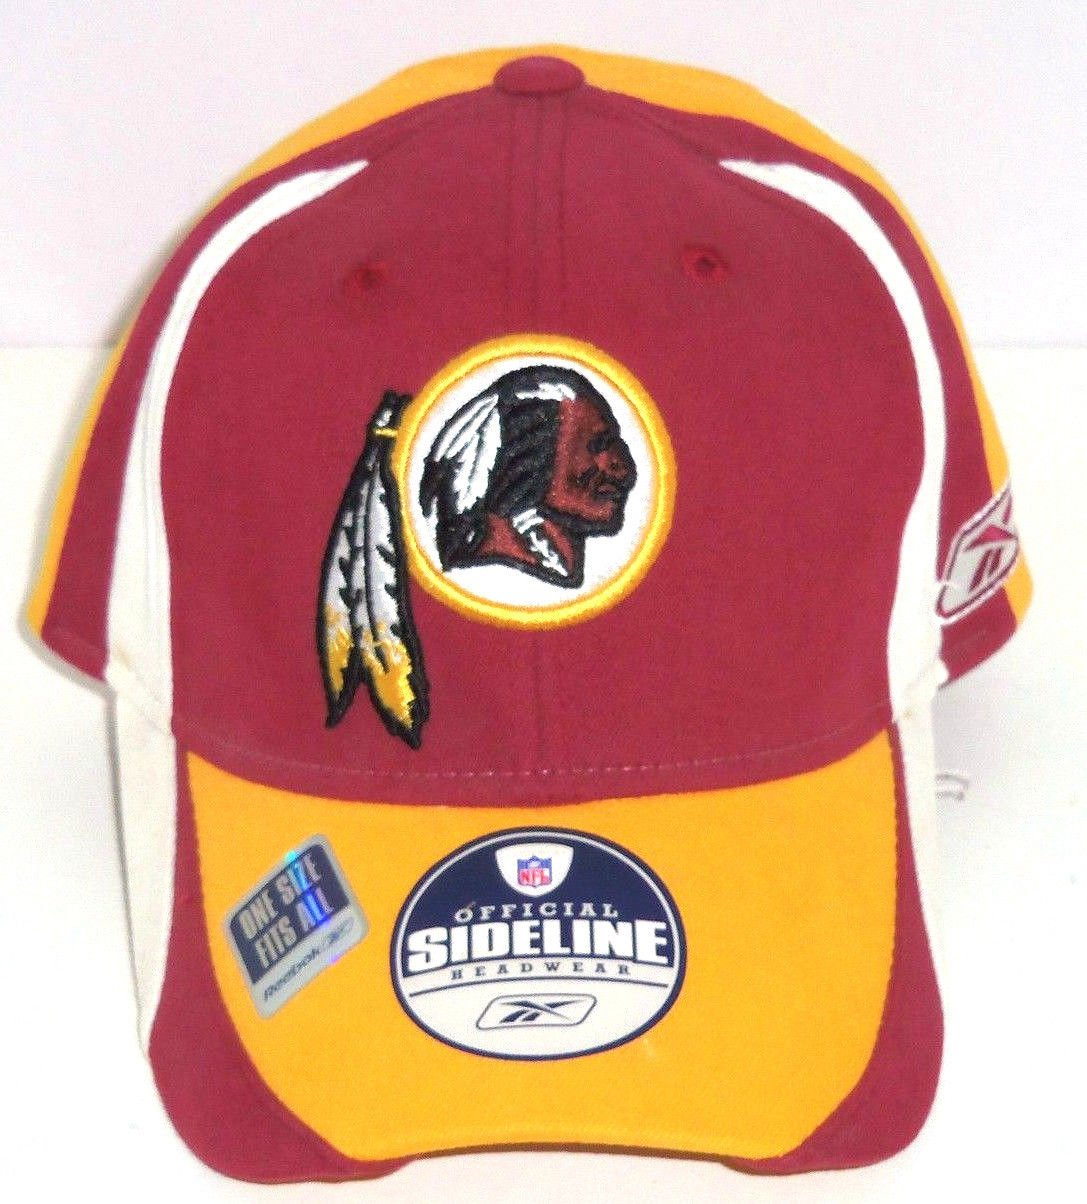 e3b14fbdb65 Washington Redskins Hat Cap Sideline Reebok NFL Football New